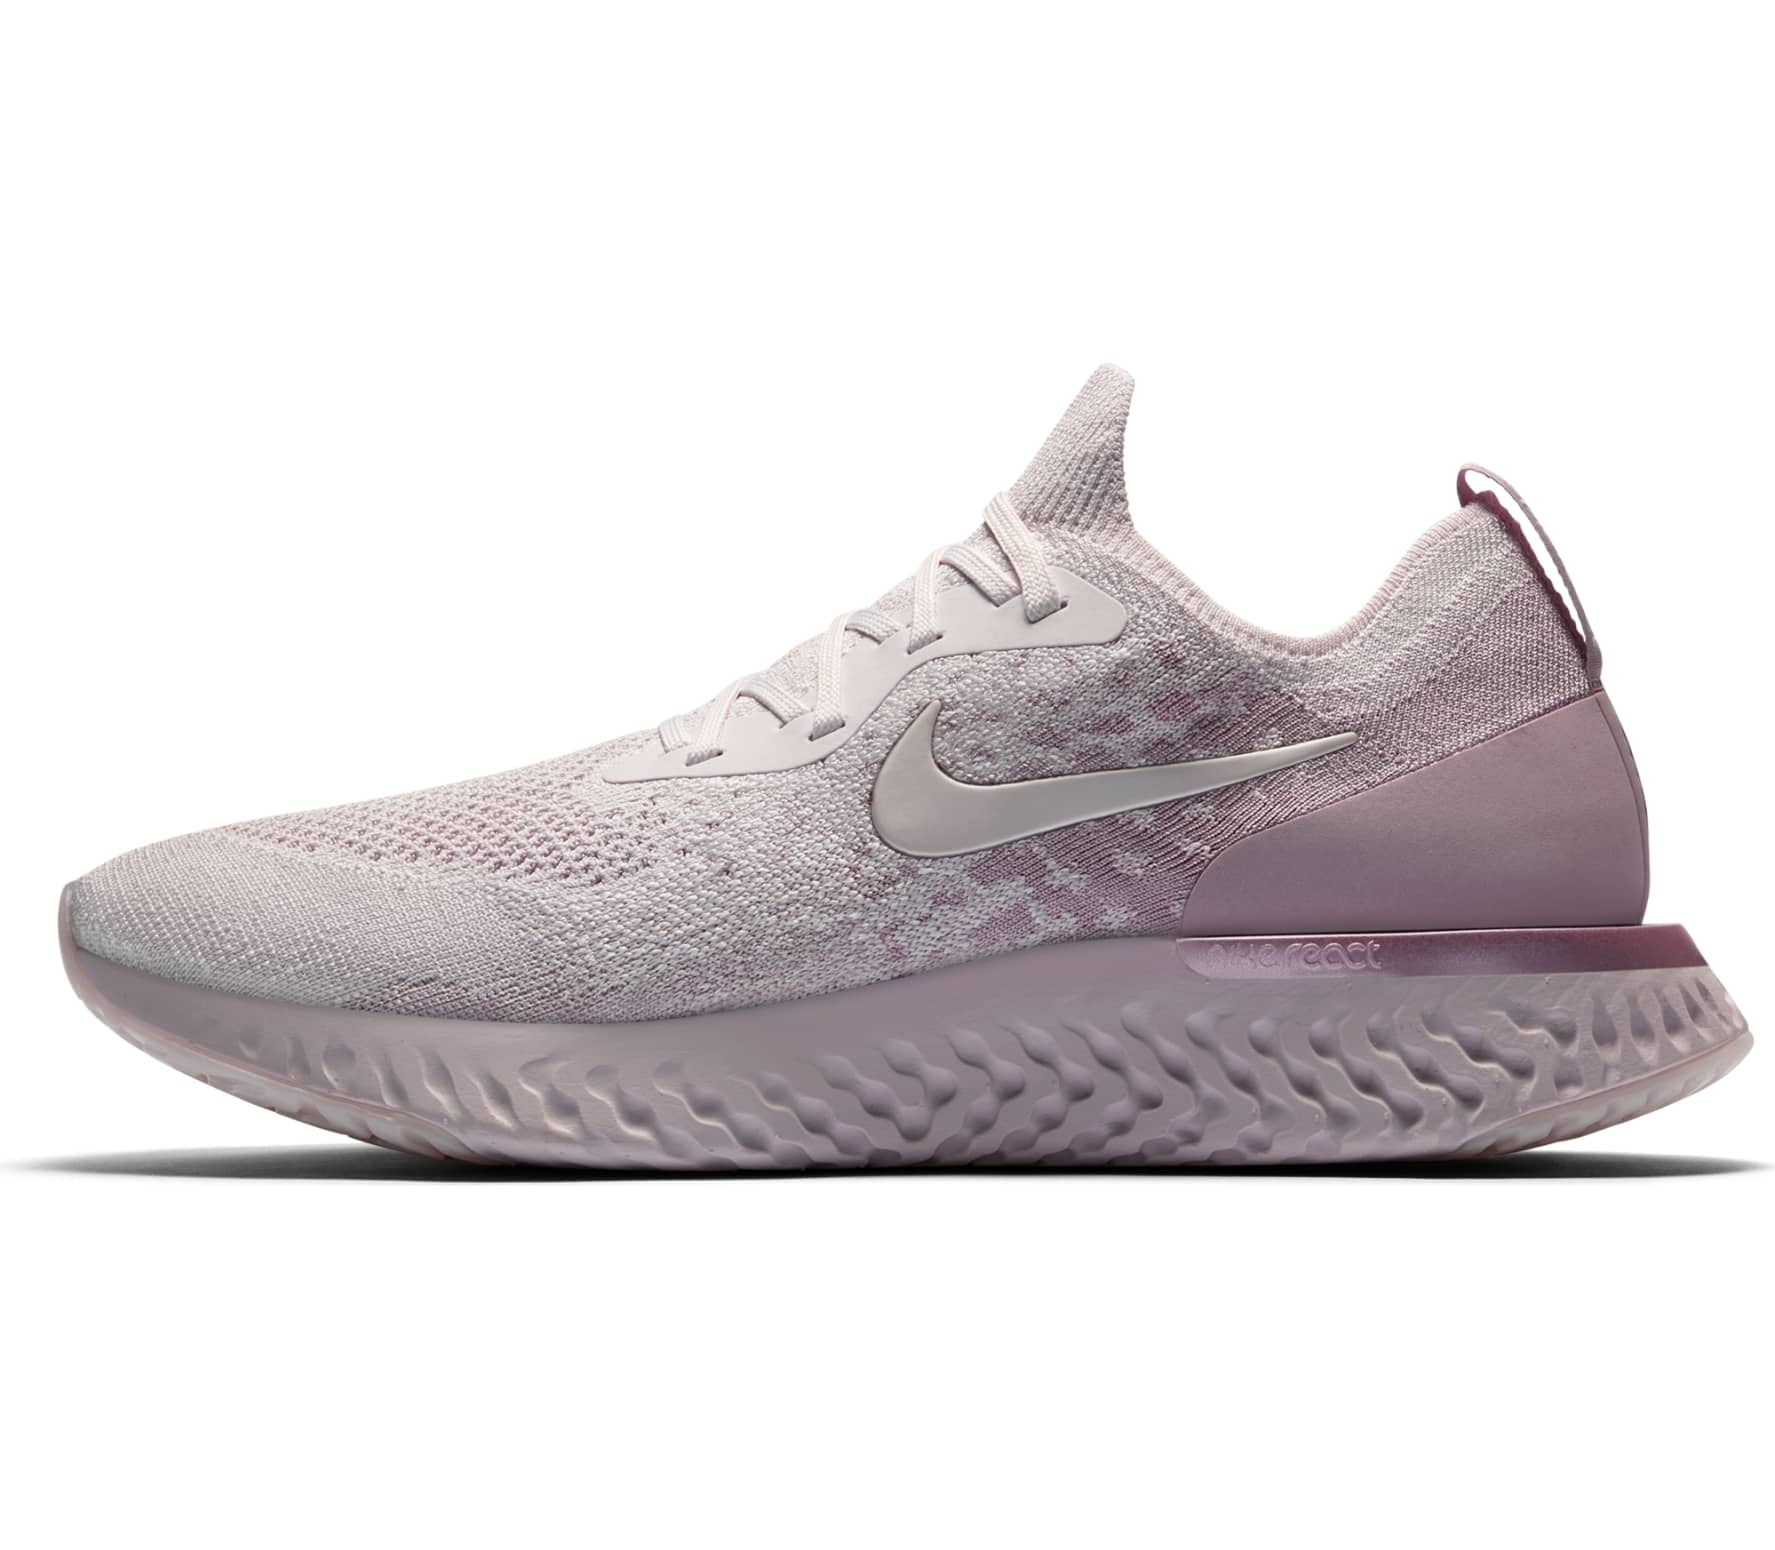 super popular 07b82 89535 ... where to buy nike epic react flyknit herren laufschuh pink a0af7 490e7